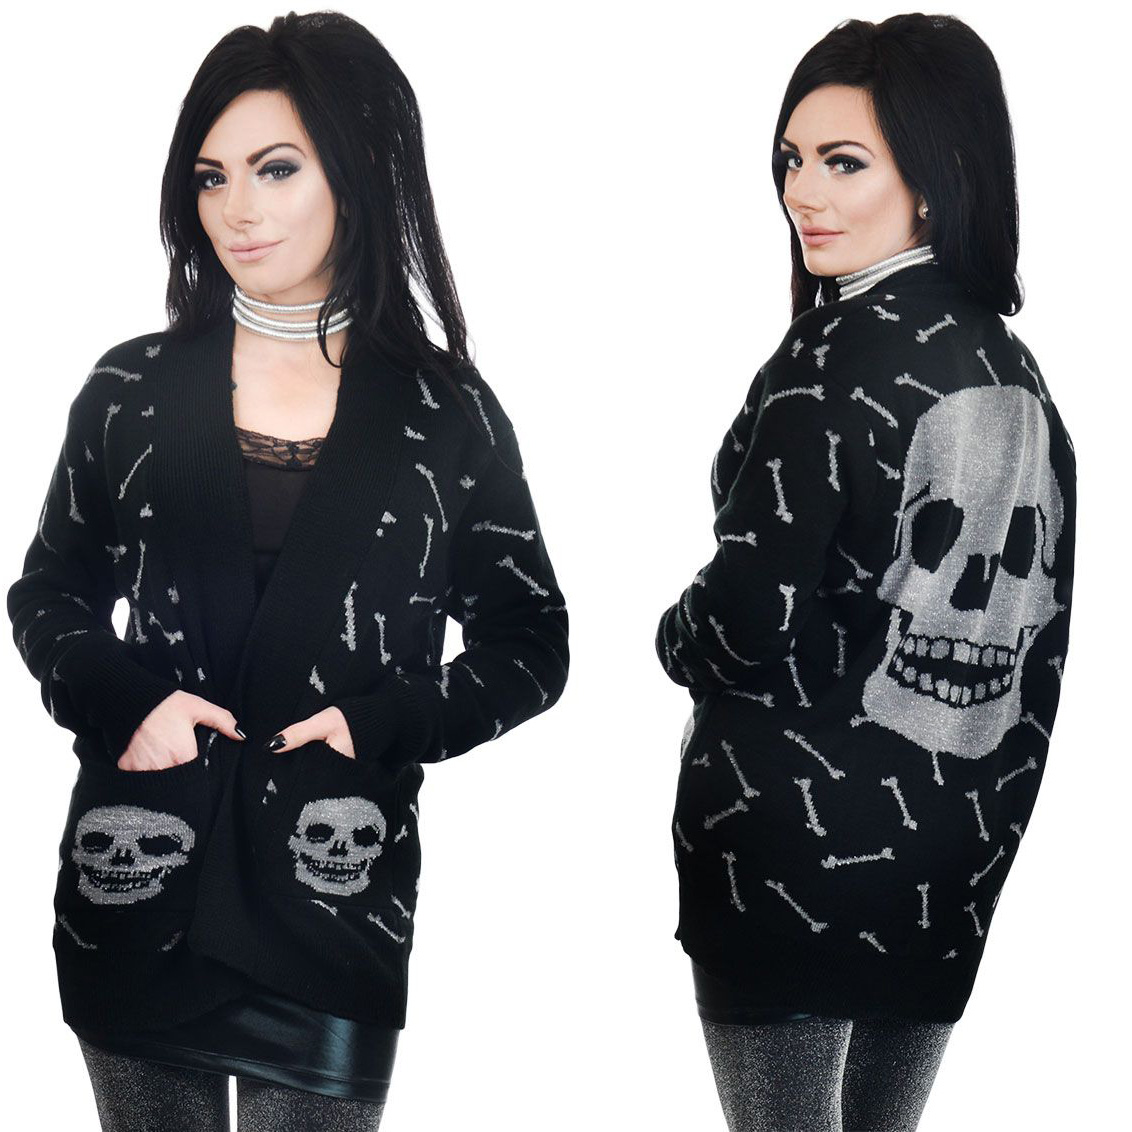 Glitter Bones Long Cardigan by Too Fast / Rat Baby Clothing